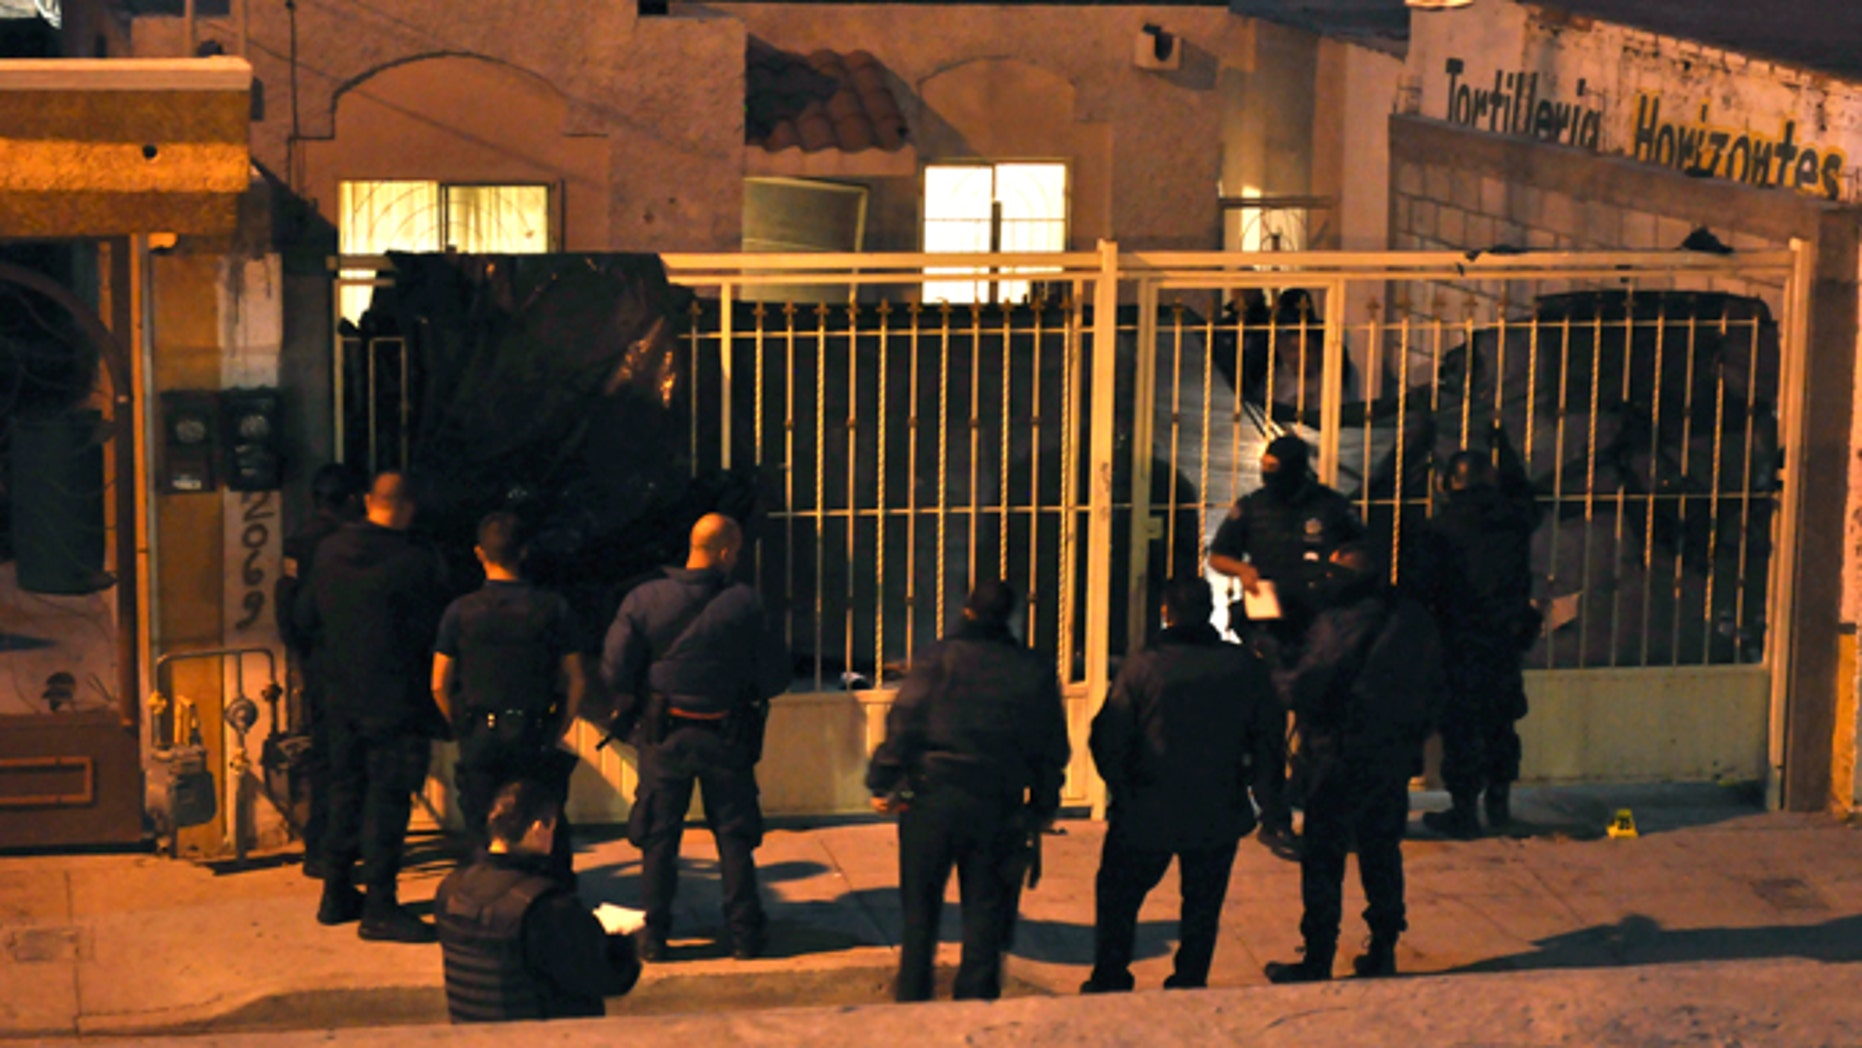 Oct. 22, 2010: Mexican federal police officers stand outside a home after the exterior gate was covered with a plastic tarp in the northern city of Ciudad Juarez, Mexico. At least 13 people were shot dead and 15 wounded in an attack on this house during a party in Ciudad Juarez, the second such massacre in less than a week in the violent border city.